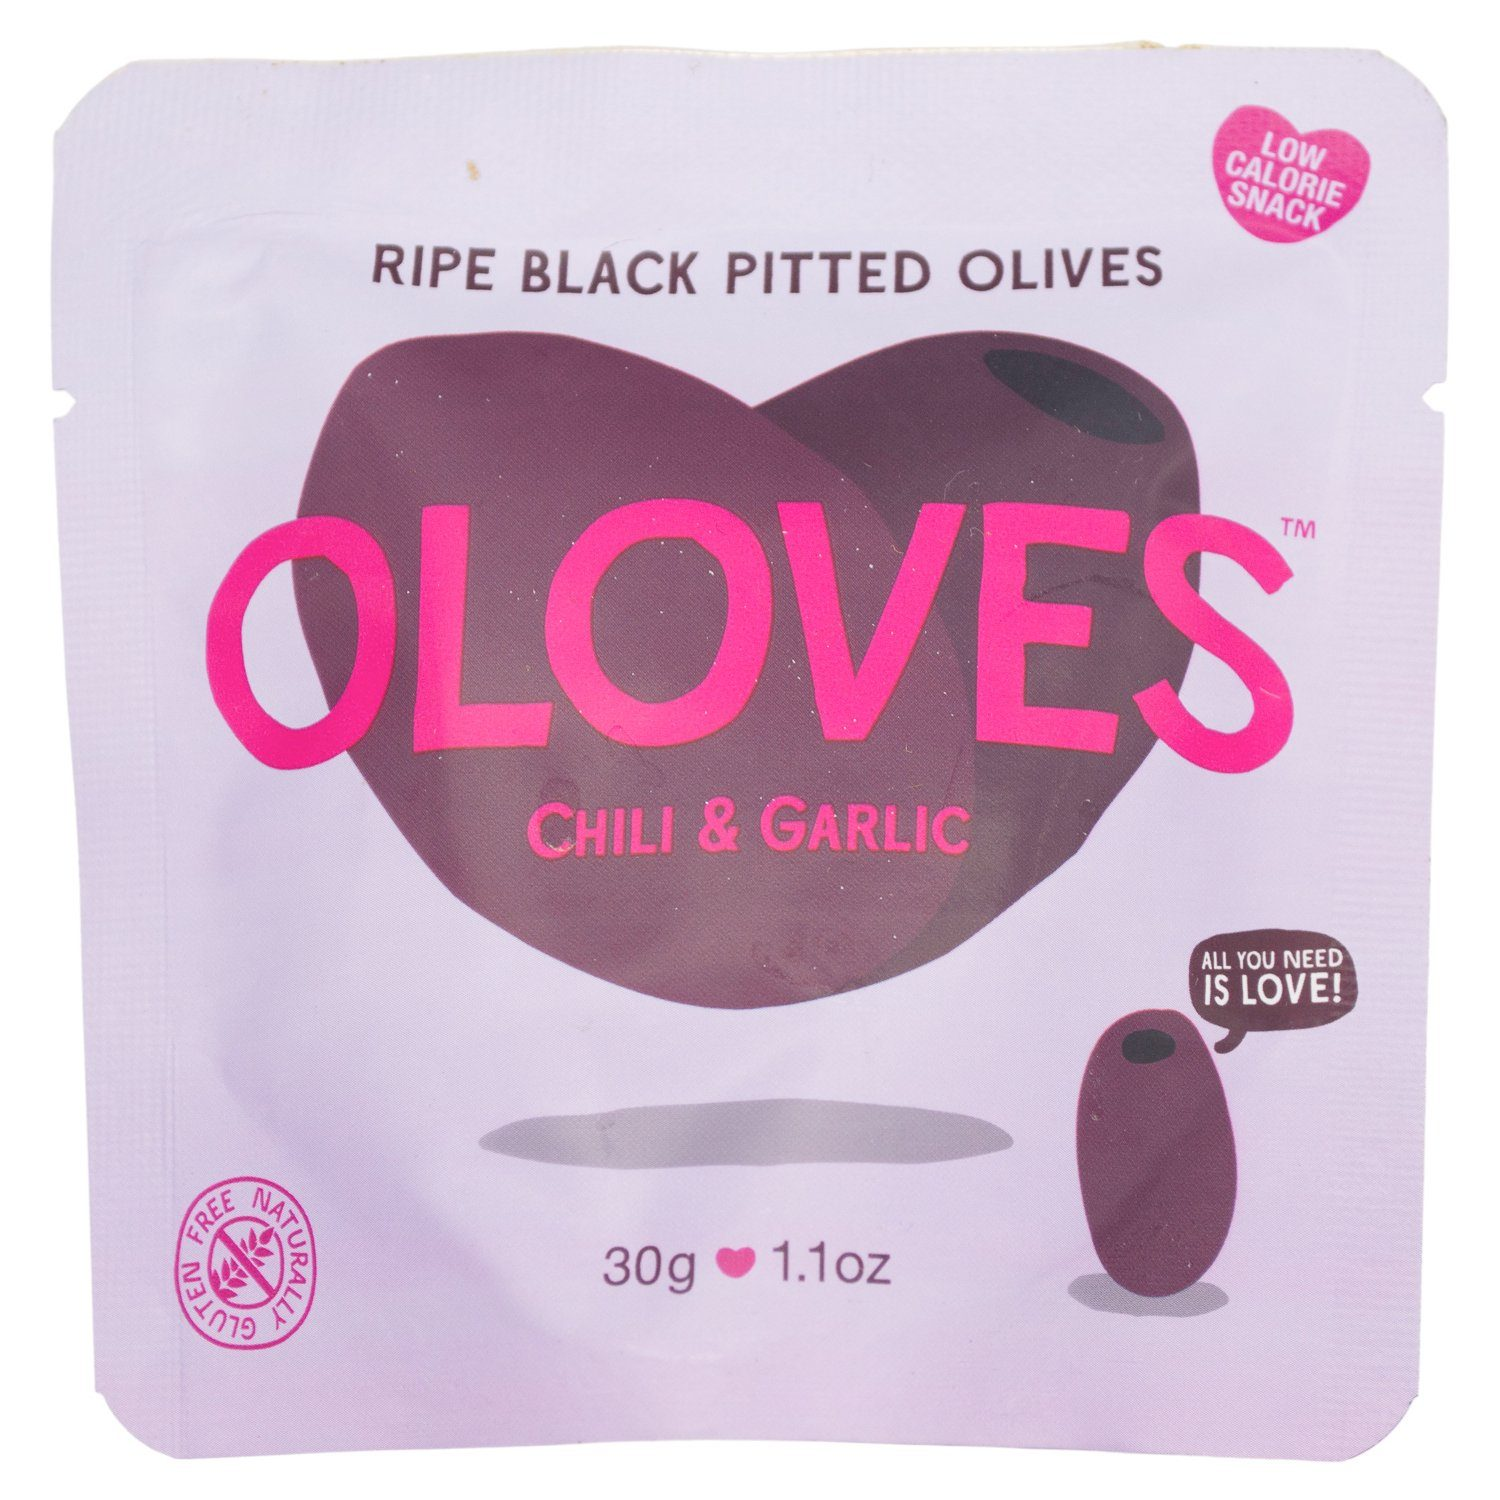 OLOVES Natural Whole Pitted Olives Elma Farms Chili & Garlic 1.1 Ounce